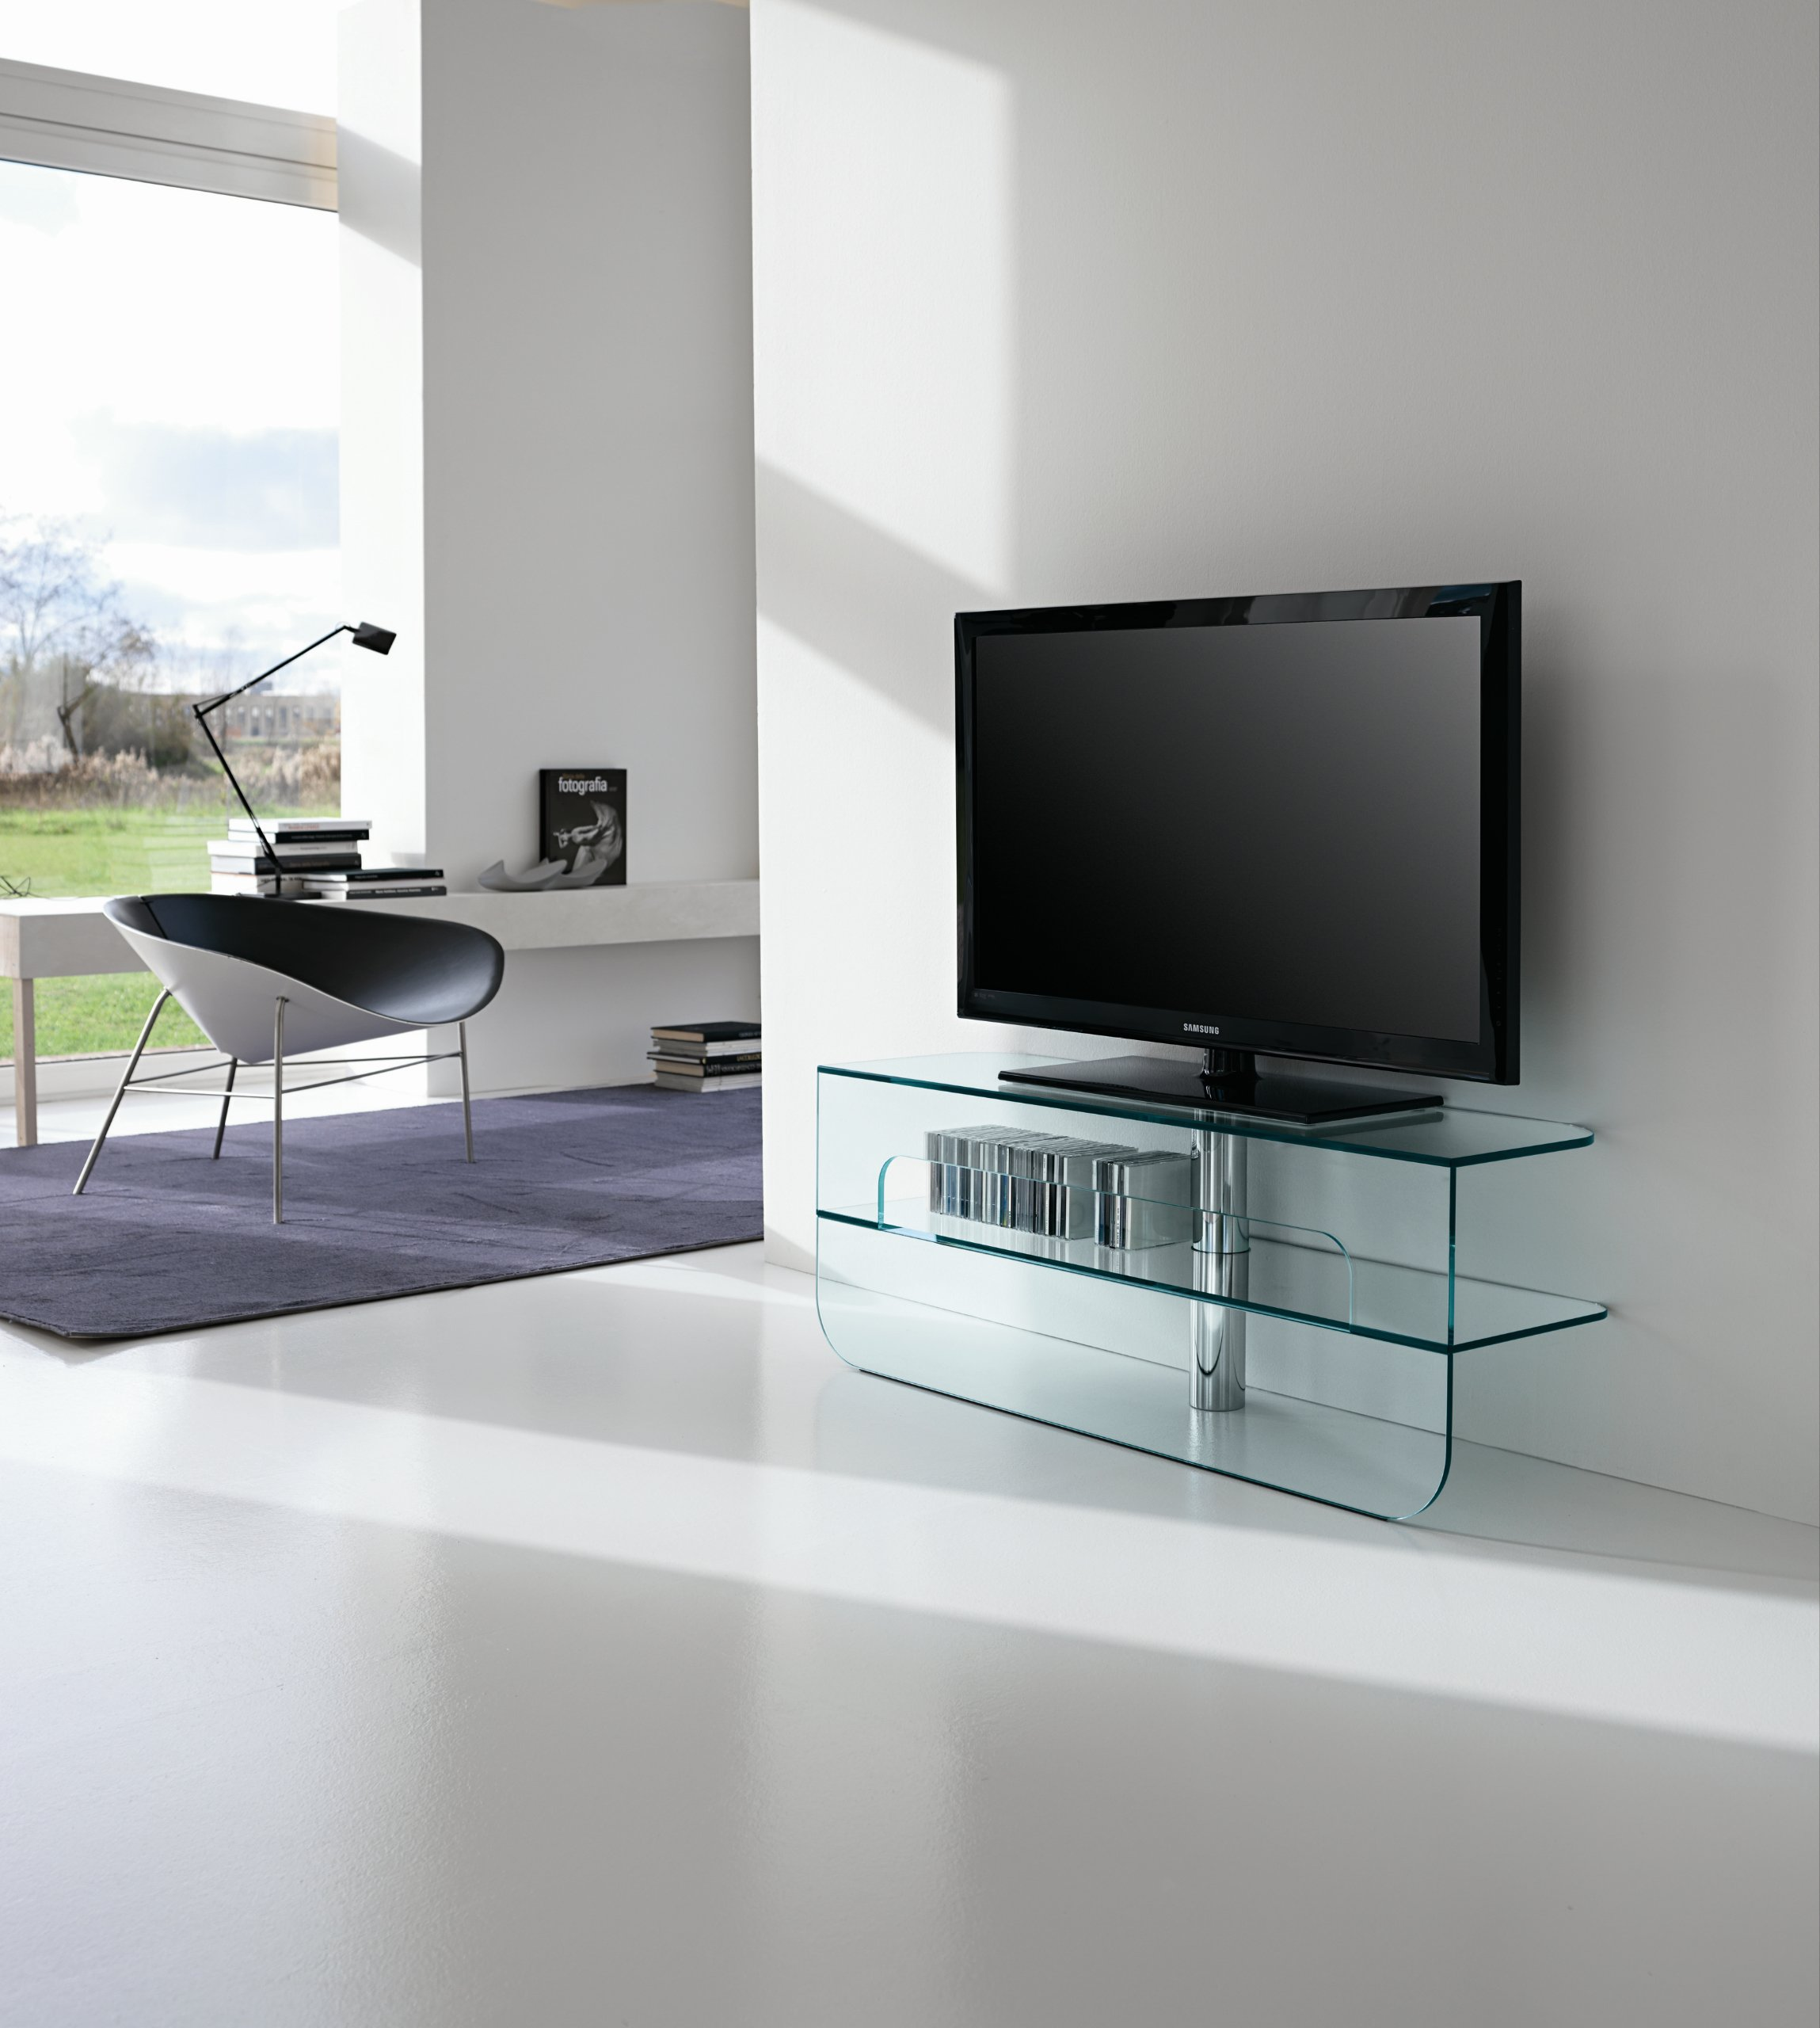 Meuble tv bas en verre plasmatik by t d tonelli design design karim rashid - Meuble tv en verre but ...